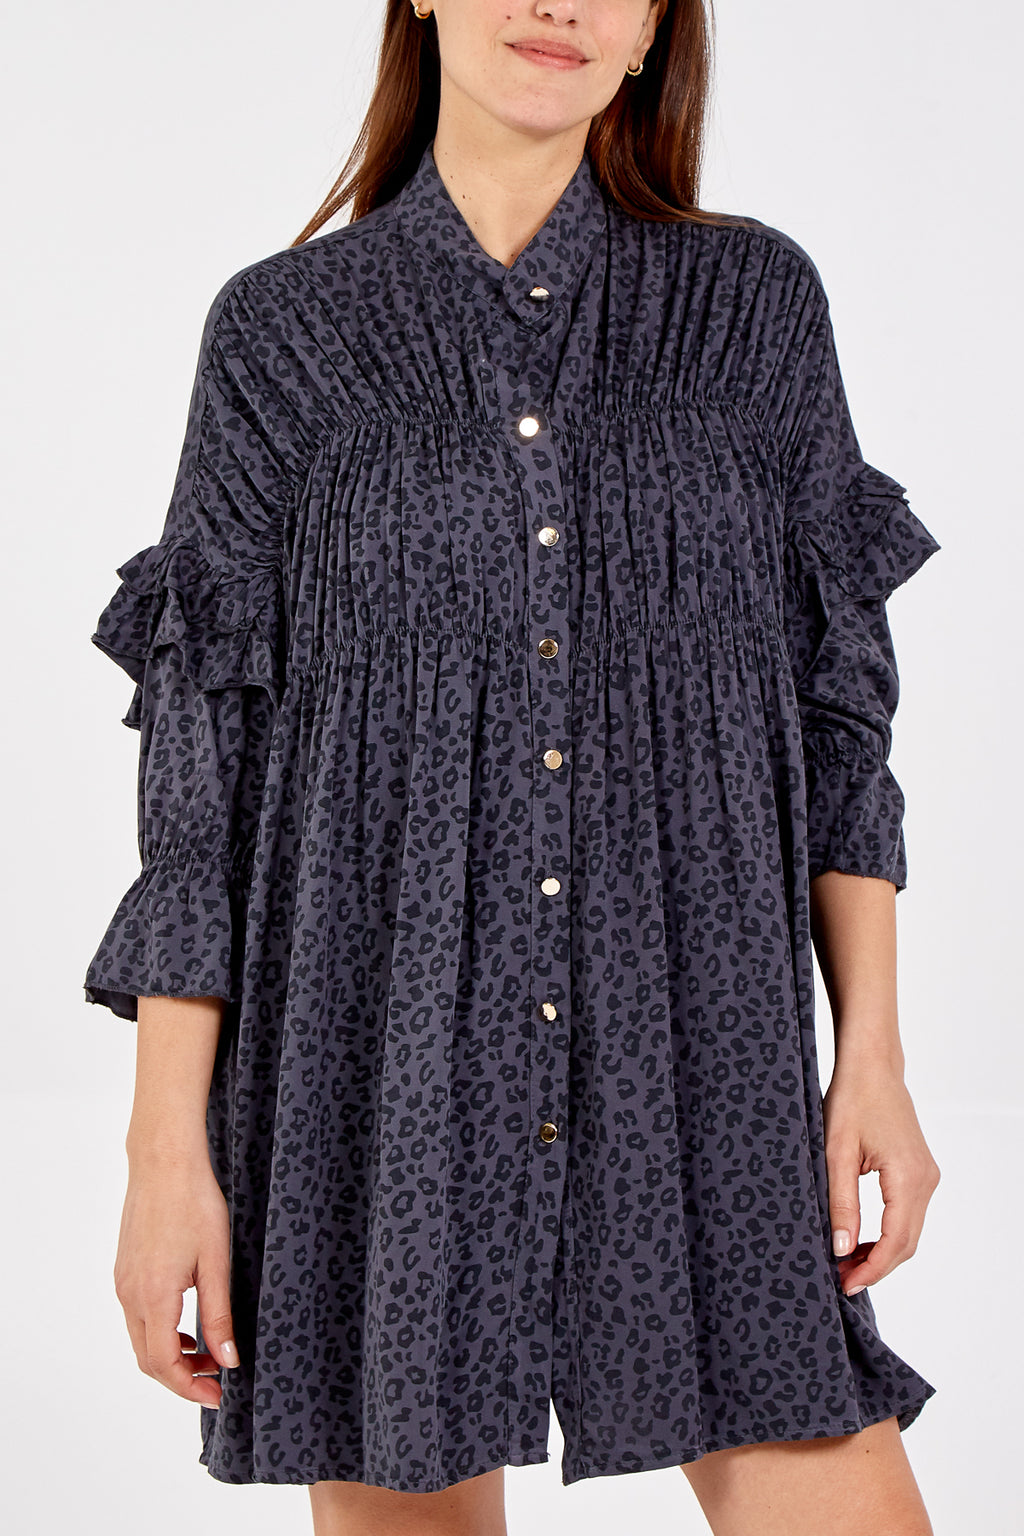 Leopard Small Print Ruffle Sleeve Button Up Smock Dress